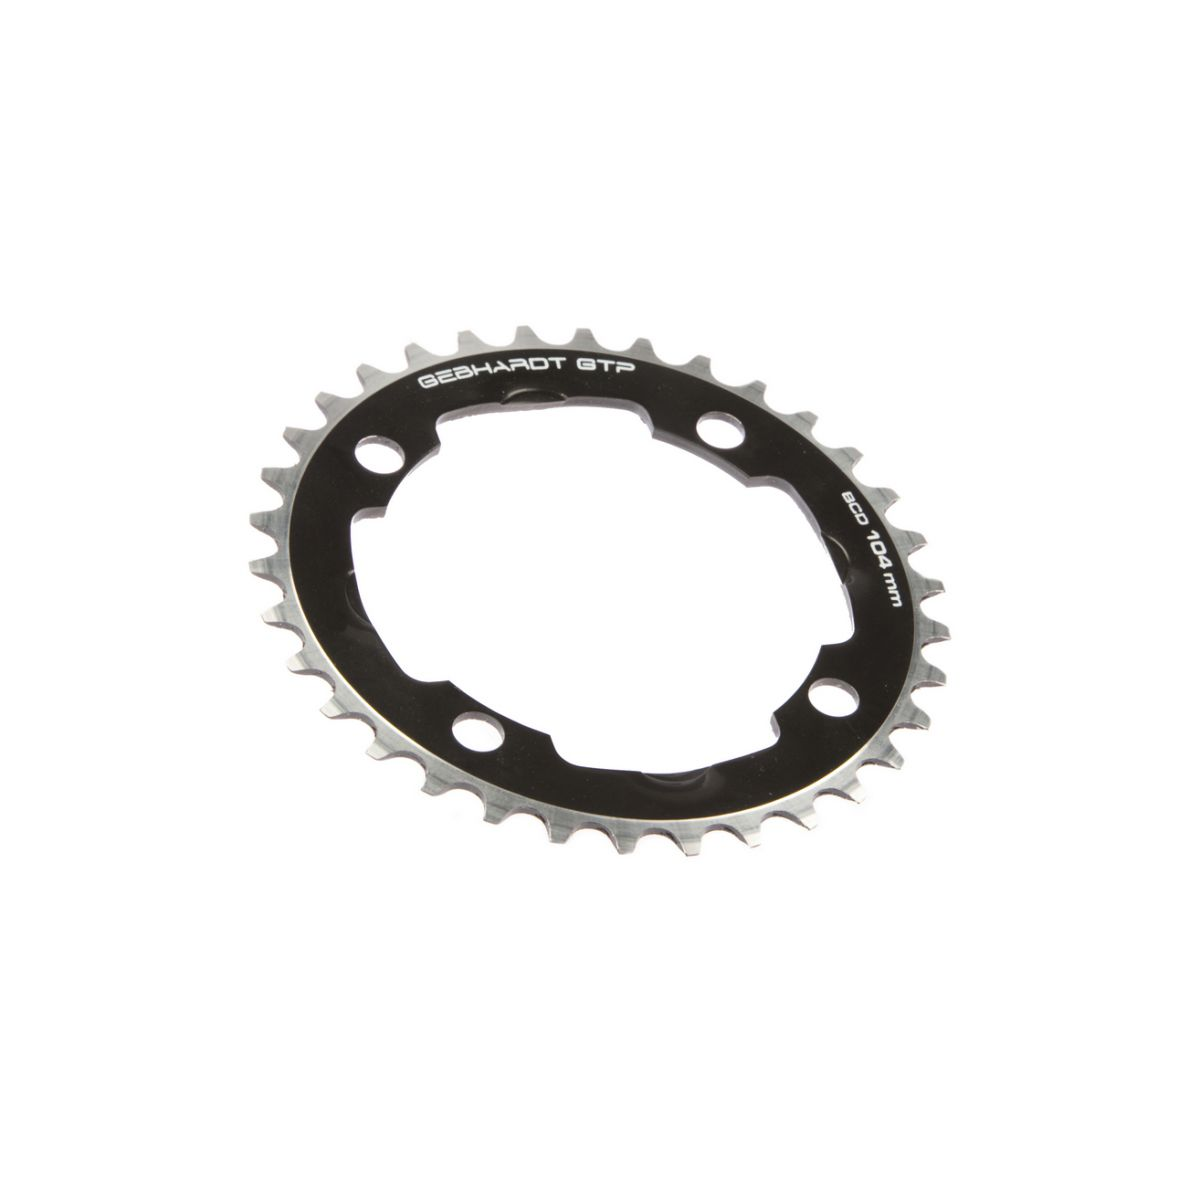 gebhardt chainring classic bcd 104 mm 4hole 34t black